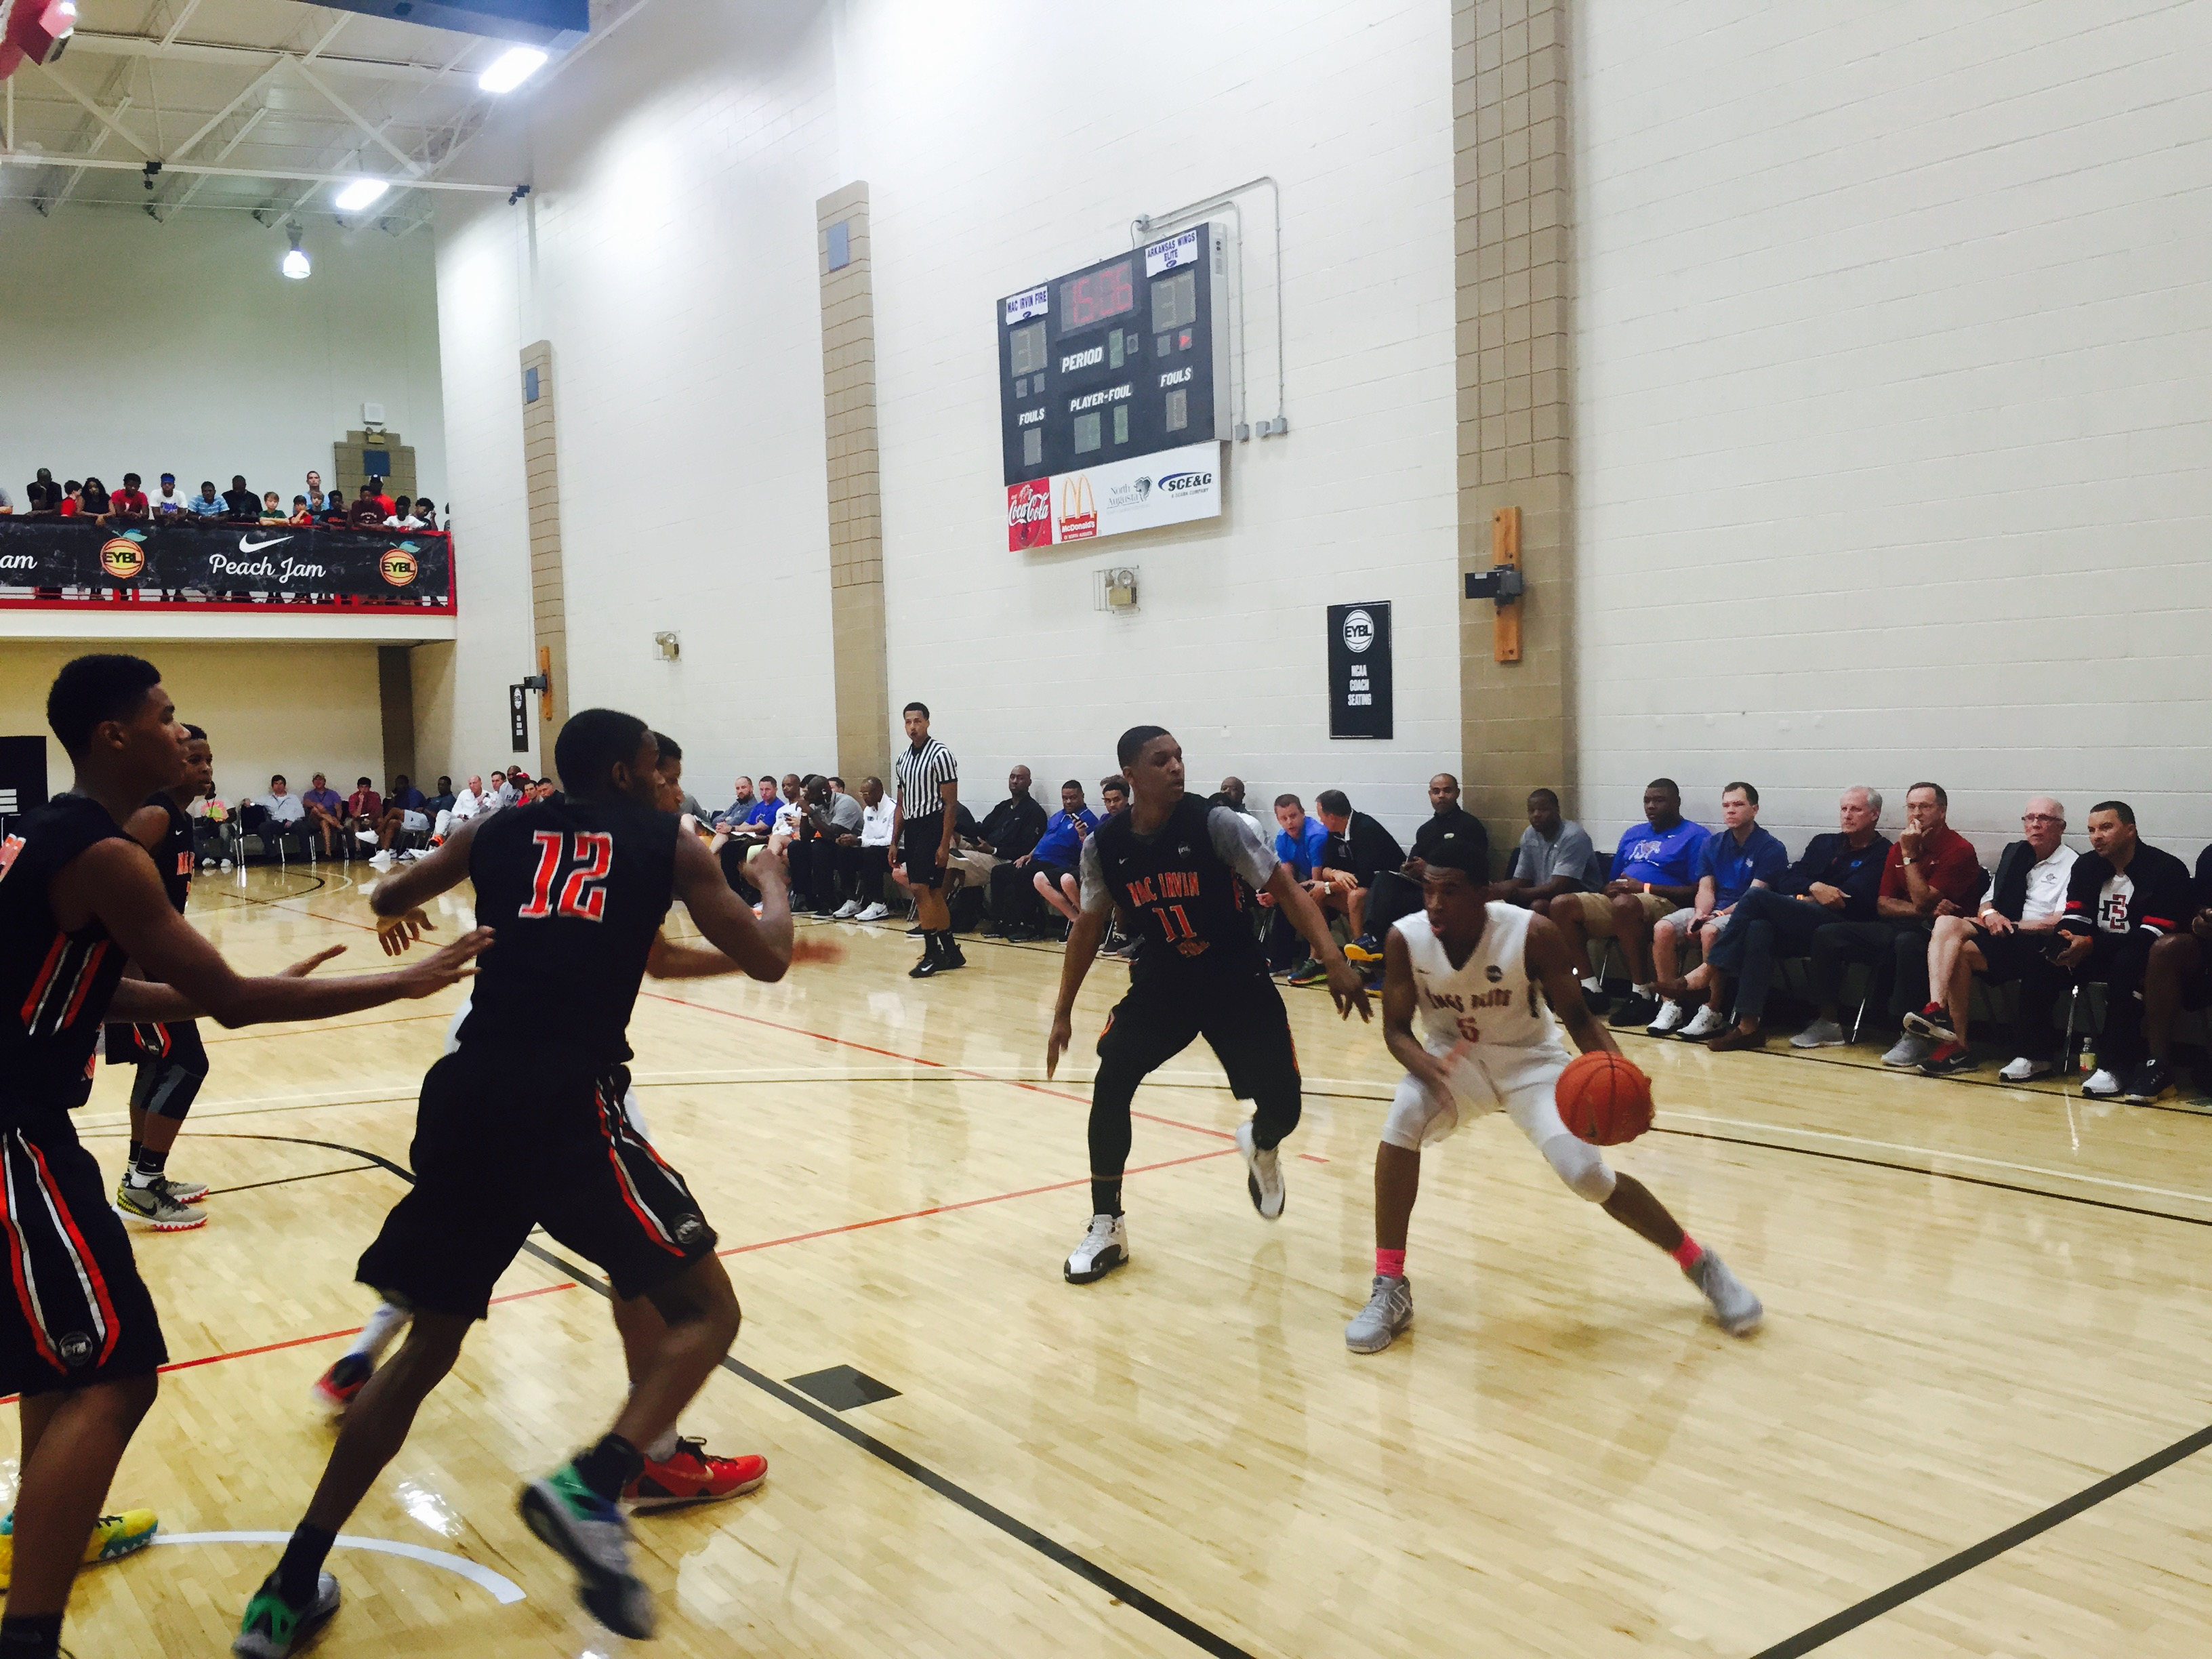 86f00a15b2 At the end of their second day at Peach Jam, the Wings beat Ohio-based Mac  Irvin to stand at three wins and one loss through their five-game pool play.